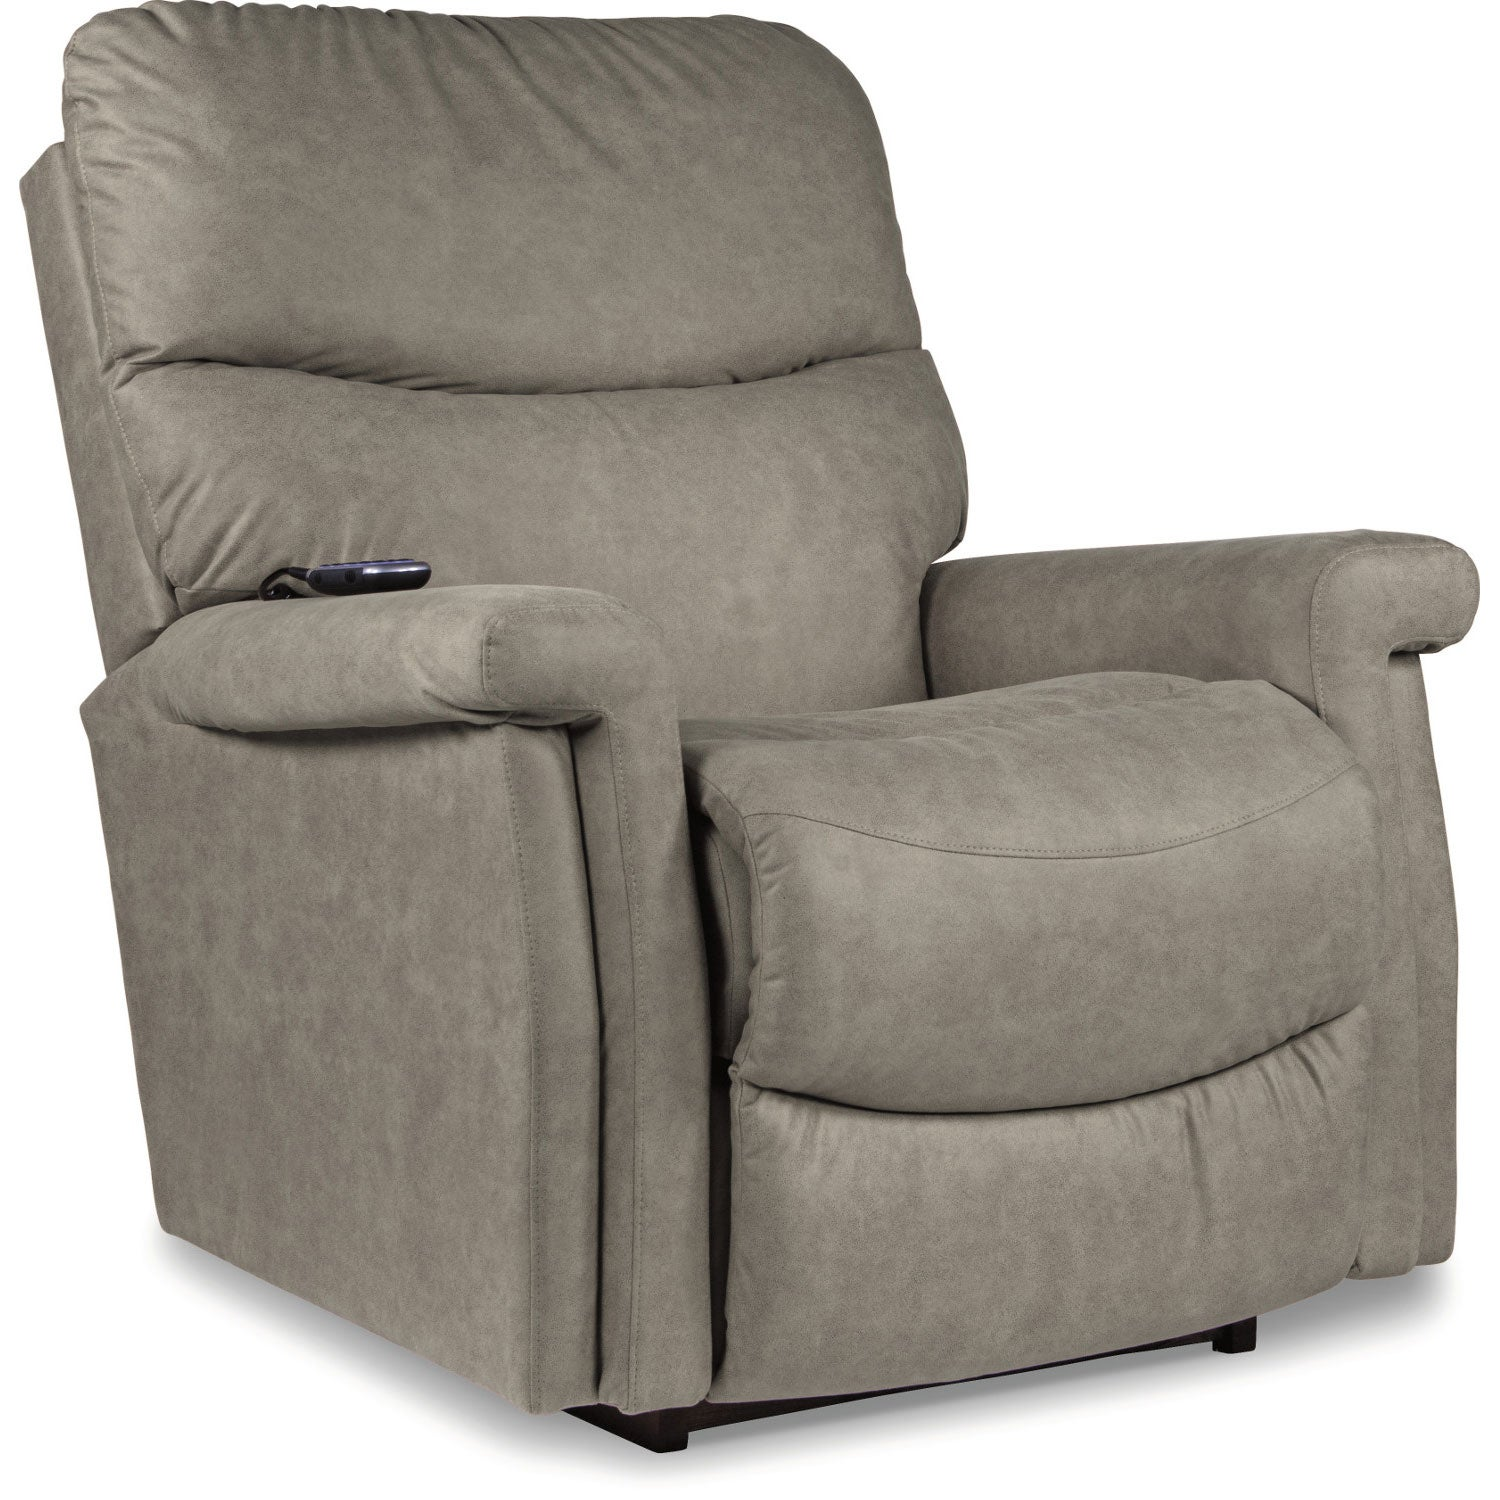 la z harris lancer family rocking recliner recliners furniture product boy